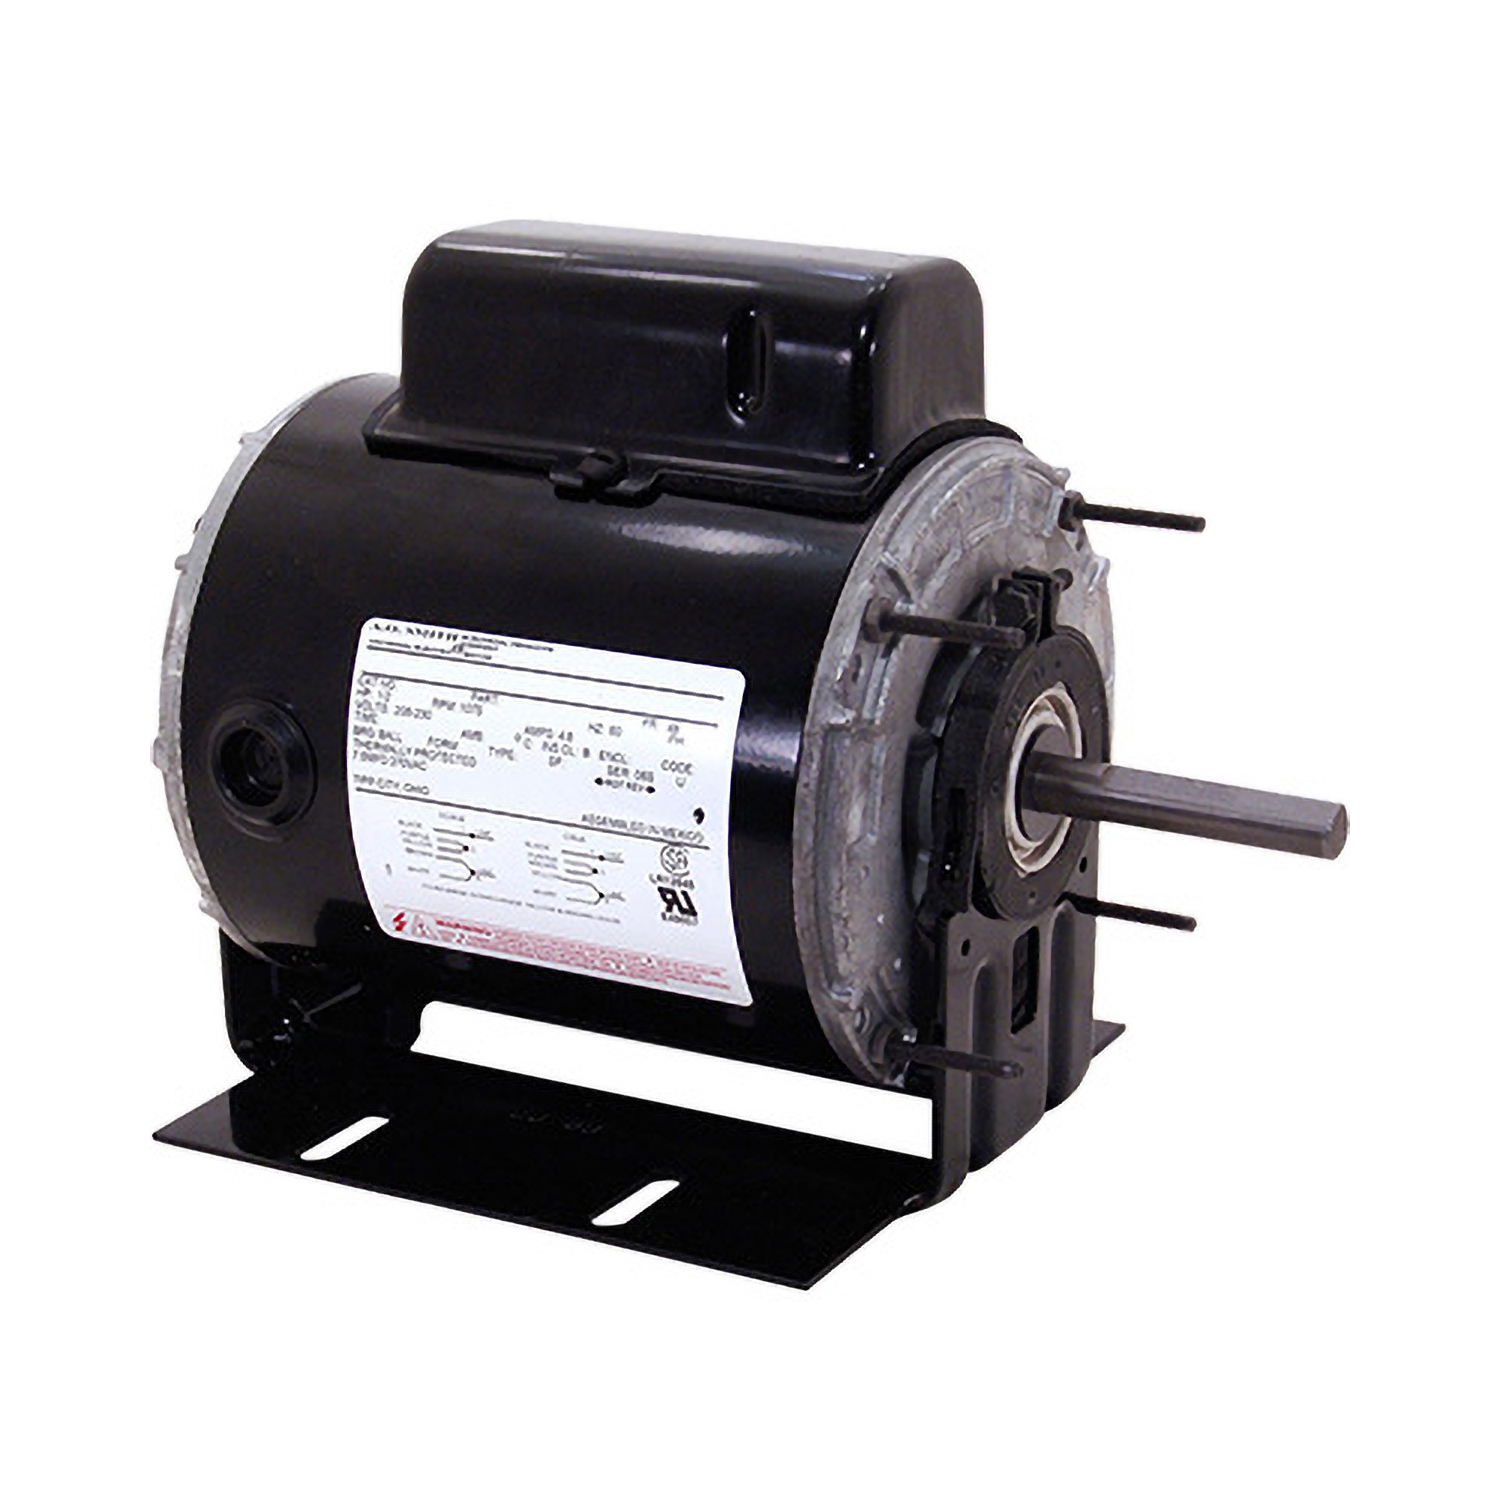 1/2 HP 48 Frame Totally Enclosed Blower Motor 115/208-230 Volts 1140 RPM